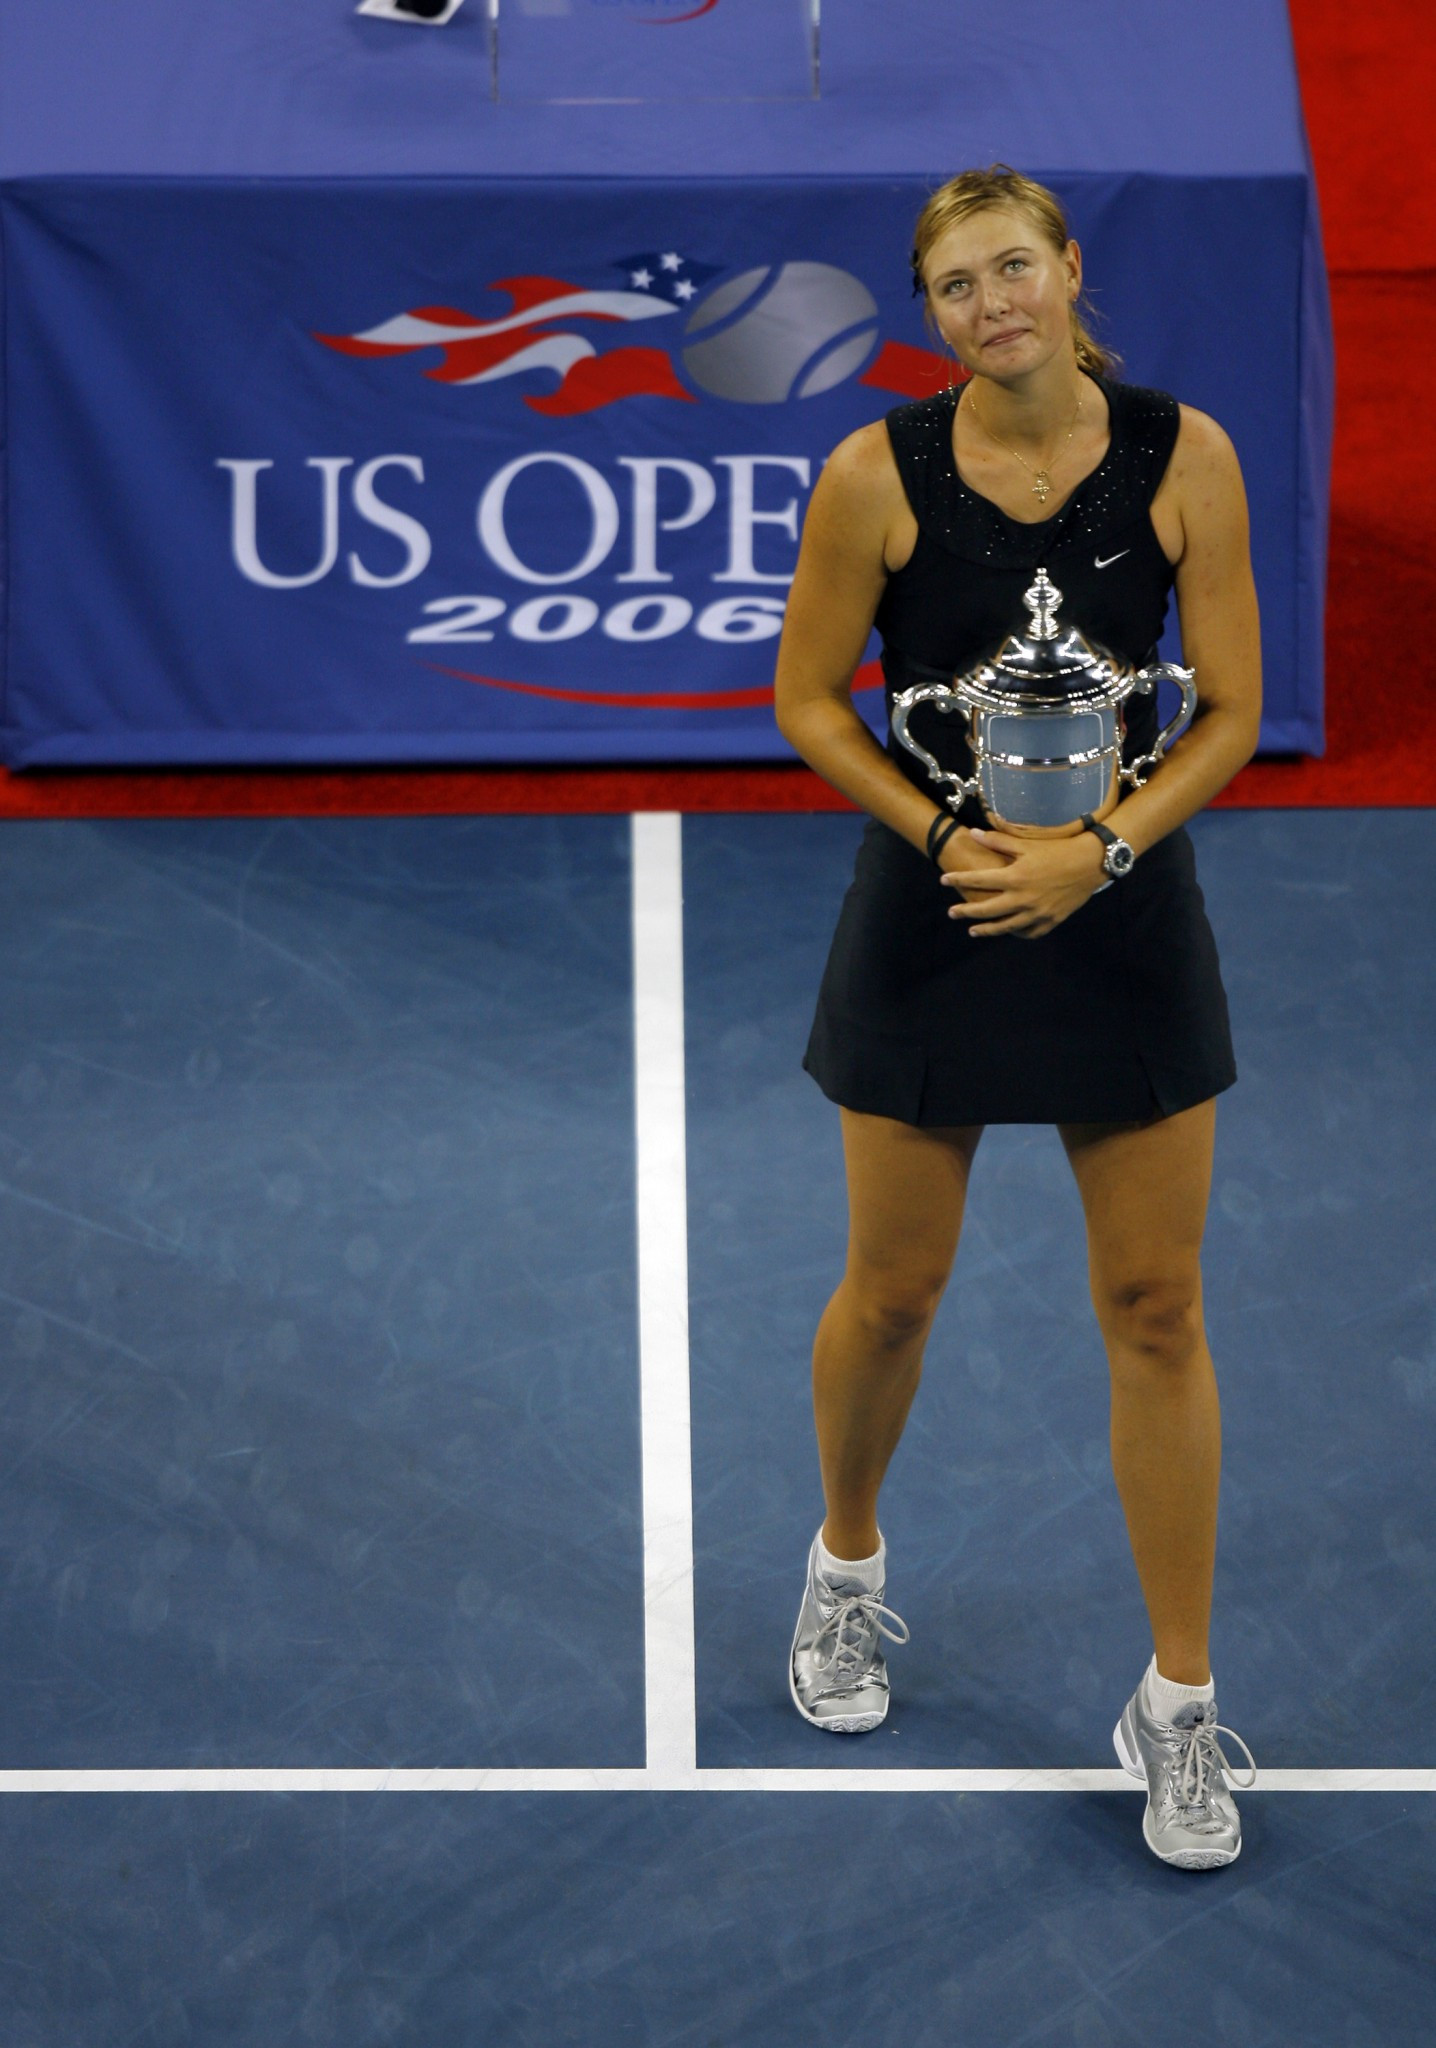 Maria Sharapova won the US Open women's singles title in 2006 ©Getty Images